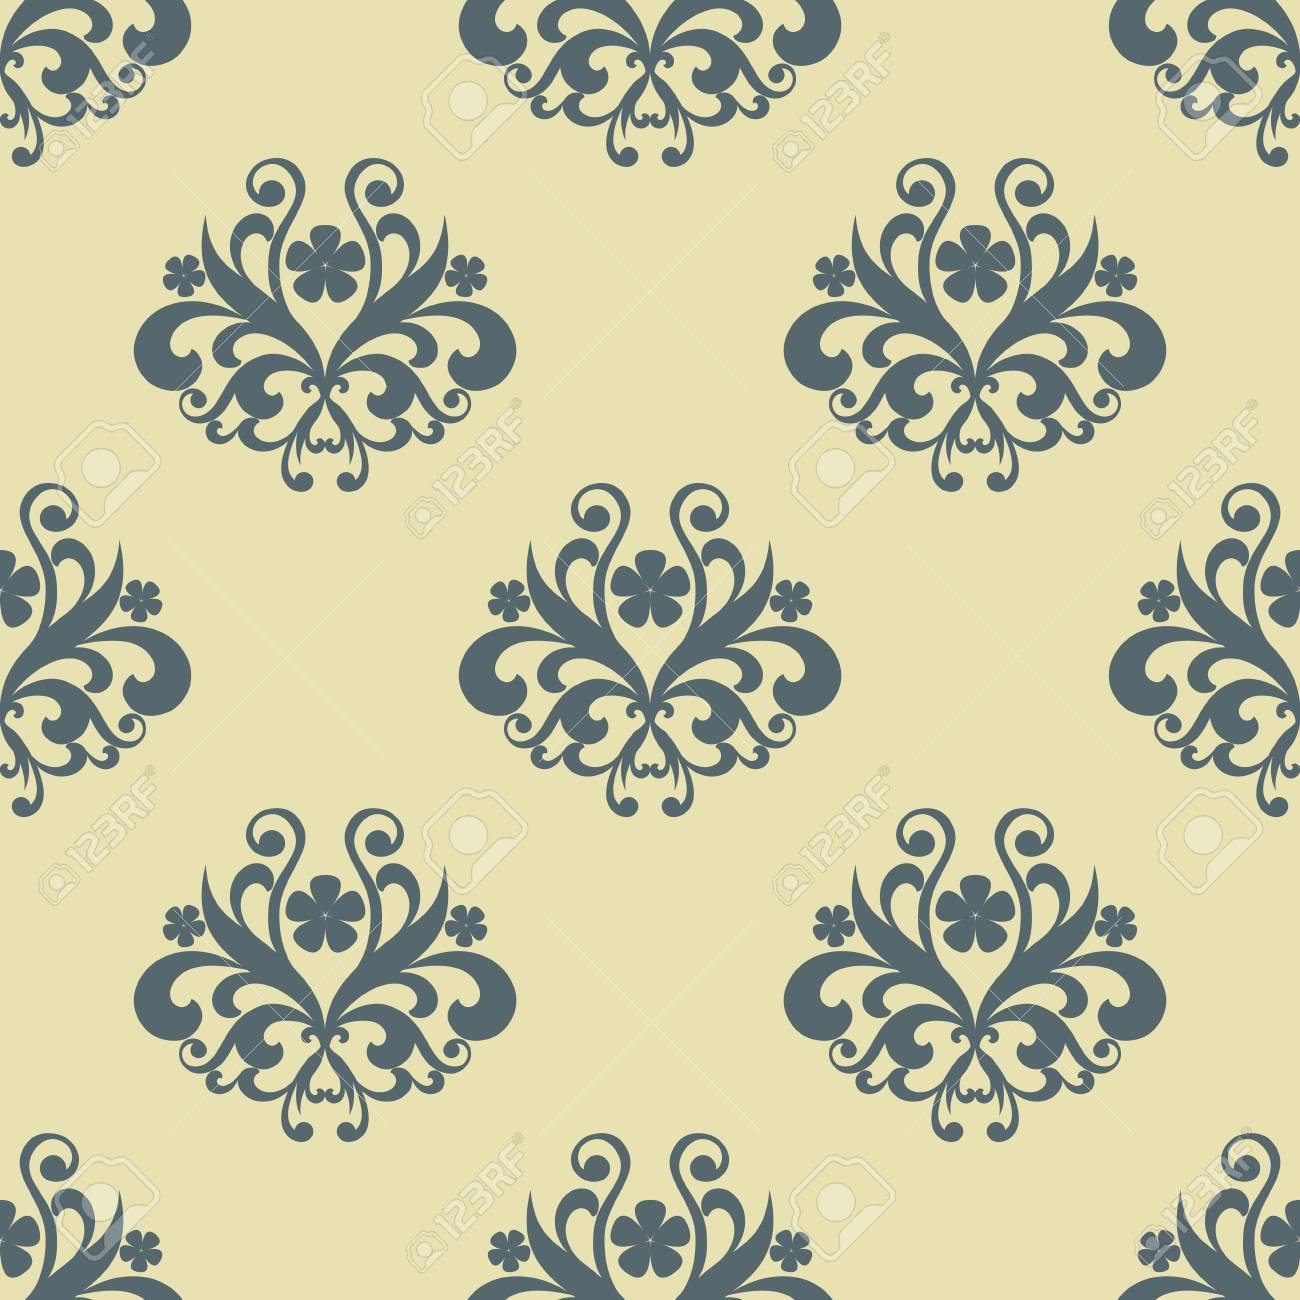 Retro Seamless Floral Pattern With Grey Flowers And Beige Background